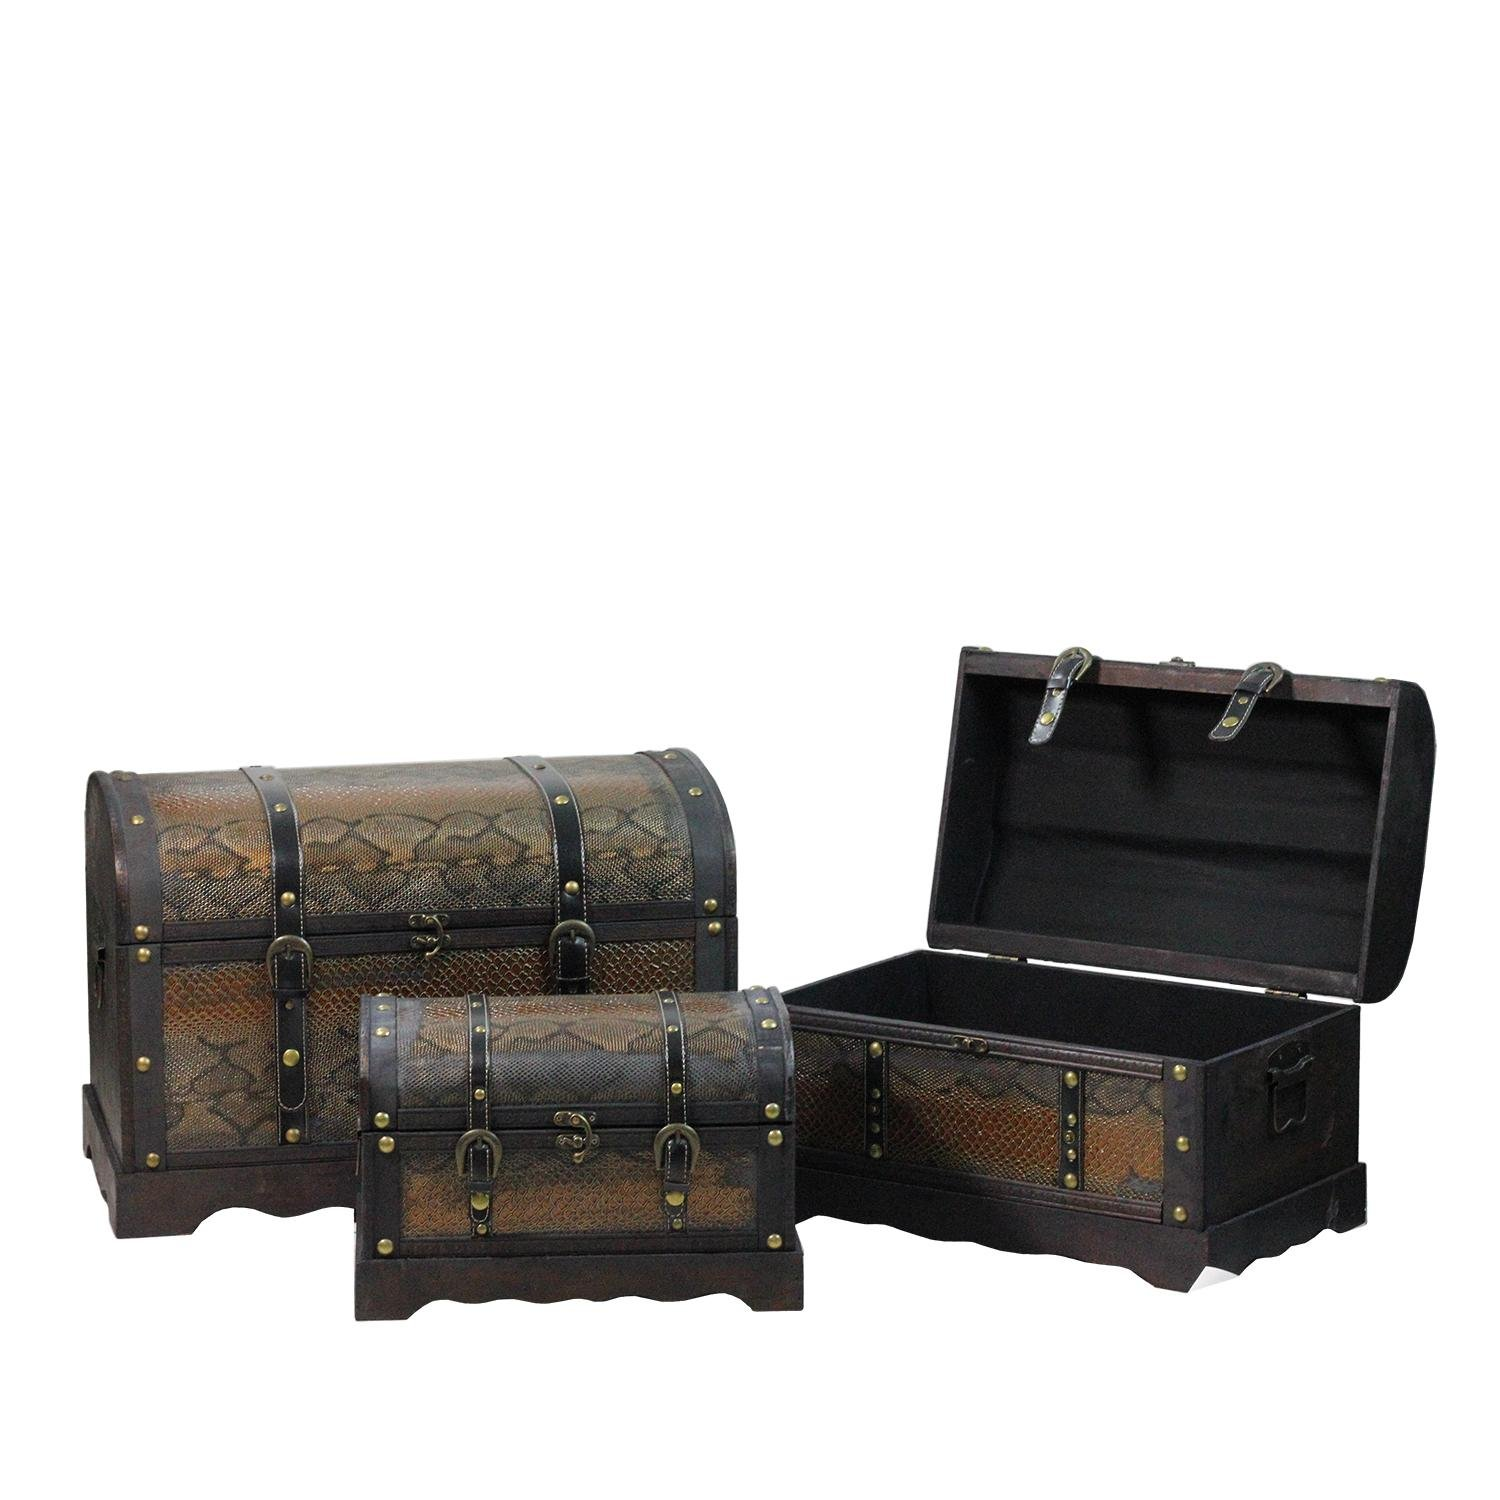 Northlight Set of 3 Decorative Wood and Faux Snakeskin Storage Boxes, 22.5'', Antique Brown